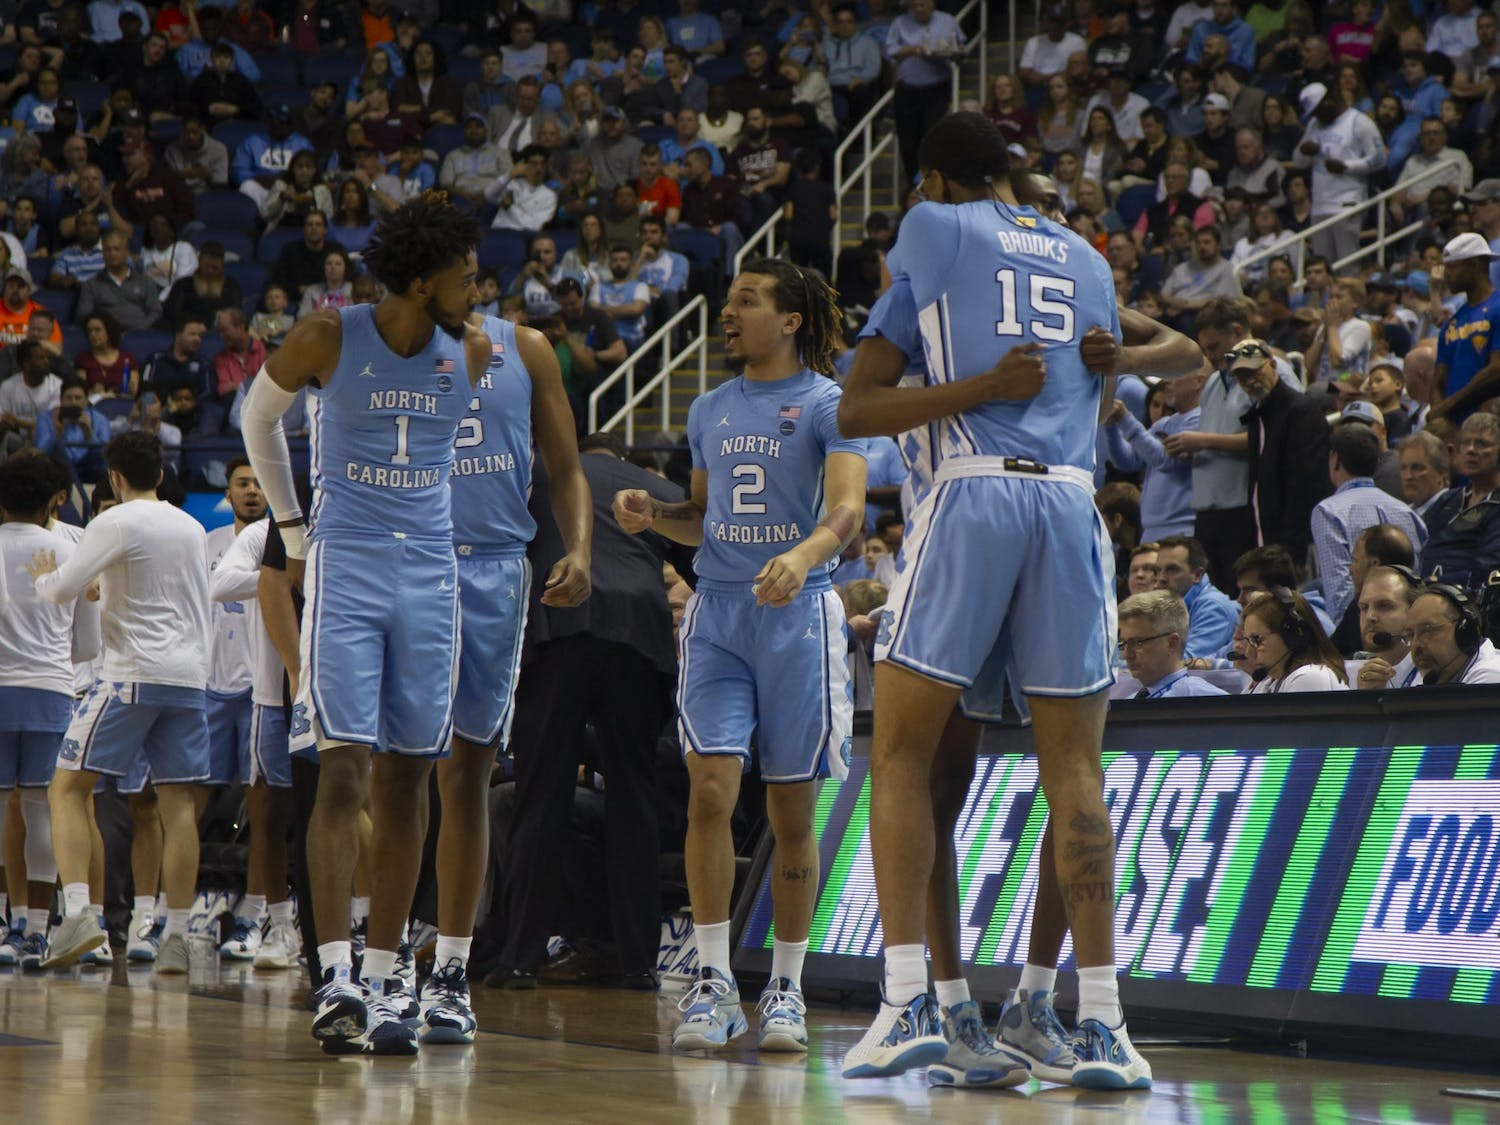 Junior forward Garrison Brooks (15) and senior guard Brandon Robinson (4) share a hug before the game against Virginia Tech in Greensboro Coliseum Complex on Tuesday, March 10, 2020. UNC beat Virginia Tech 78-56.